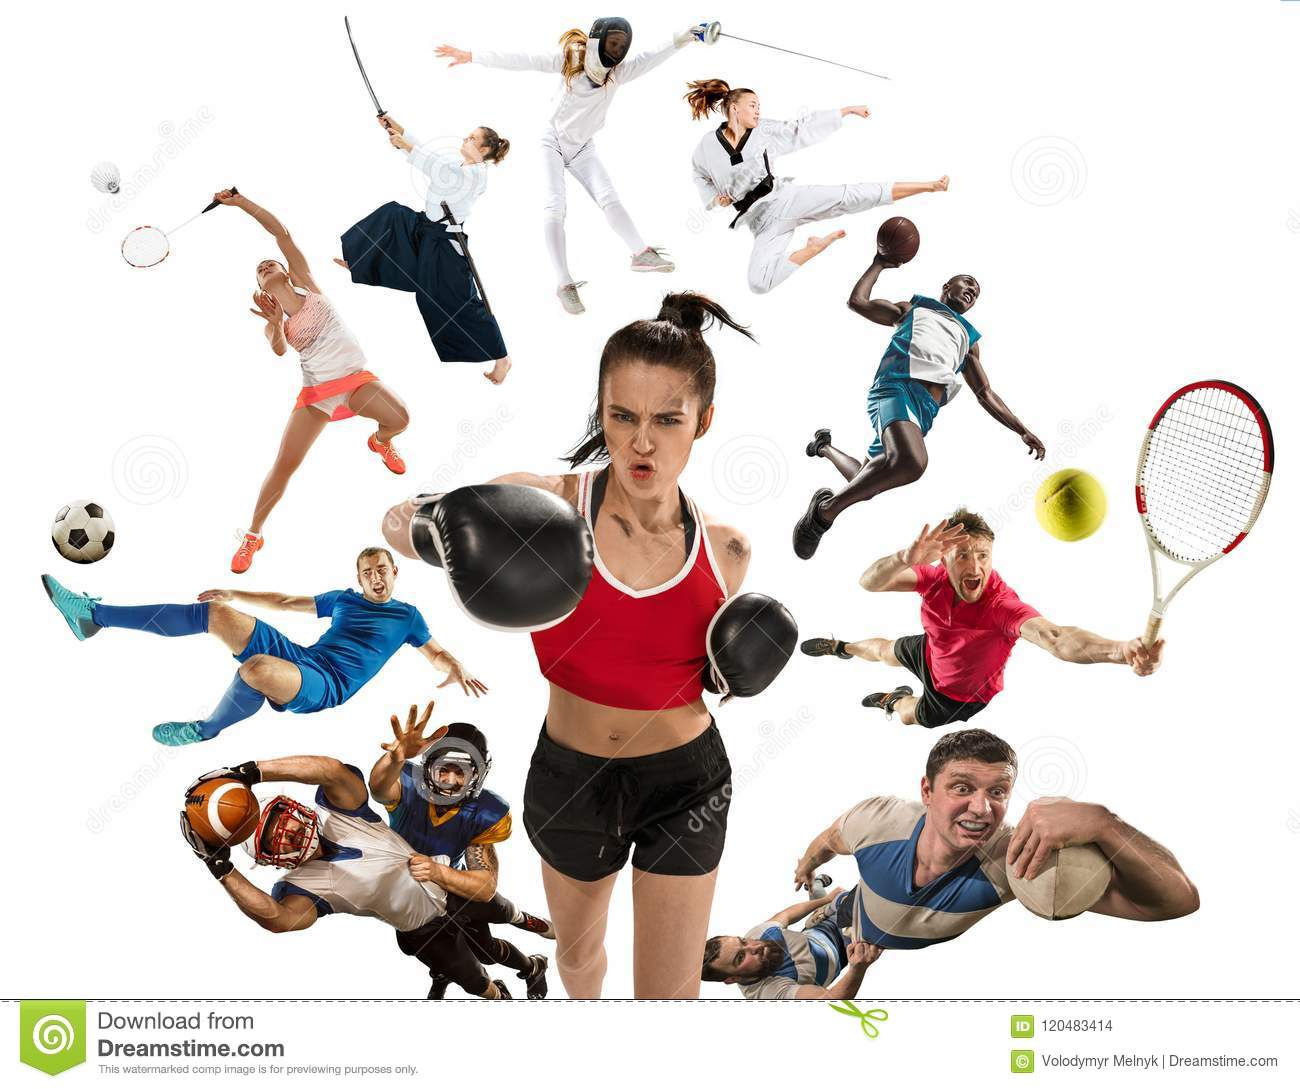 Sport collage about kickboxing, soccer, american football, basketball, badminton, taekwondo, tennis, rugby